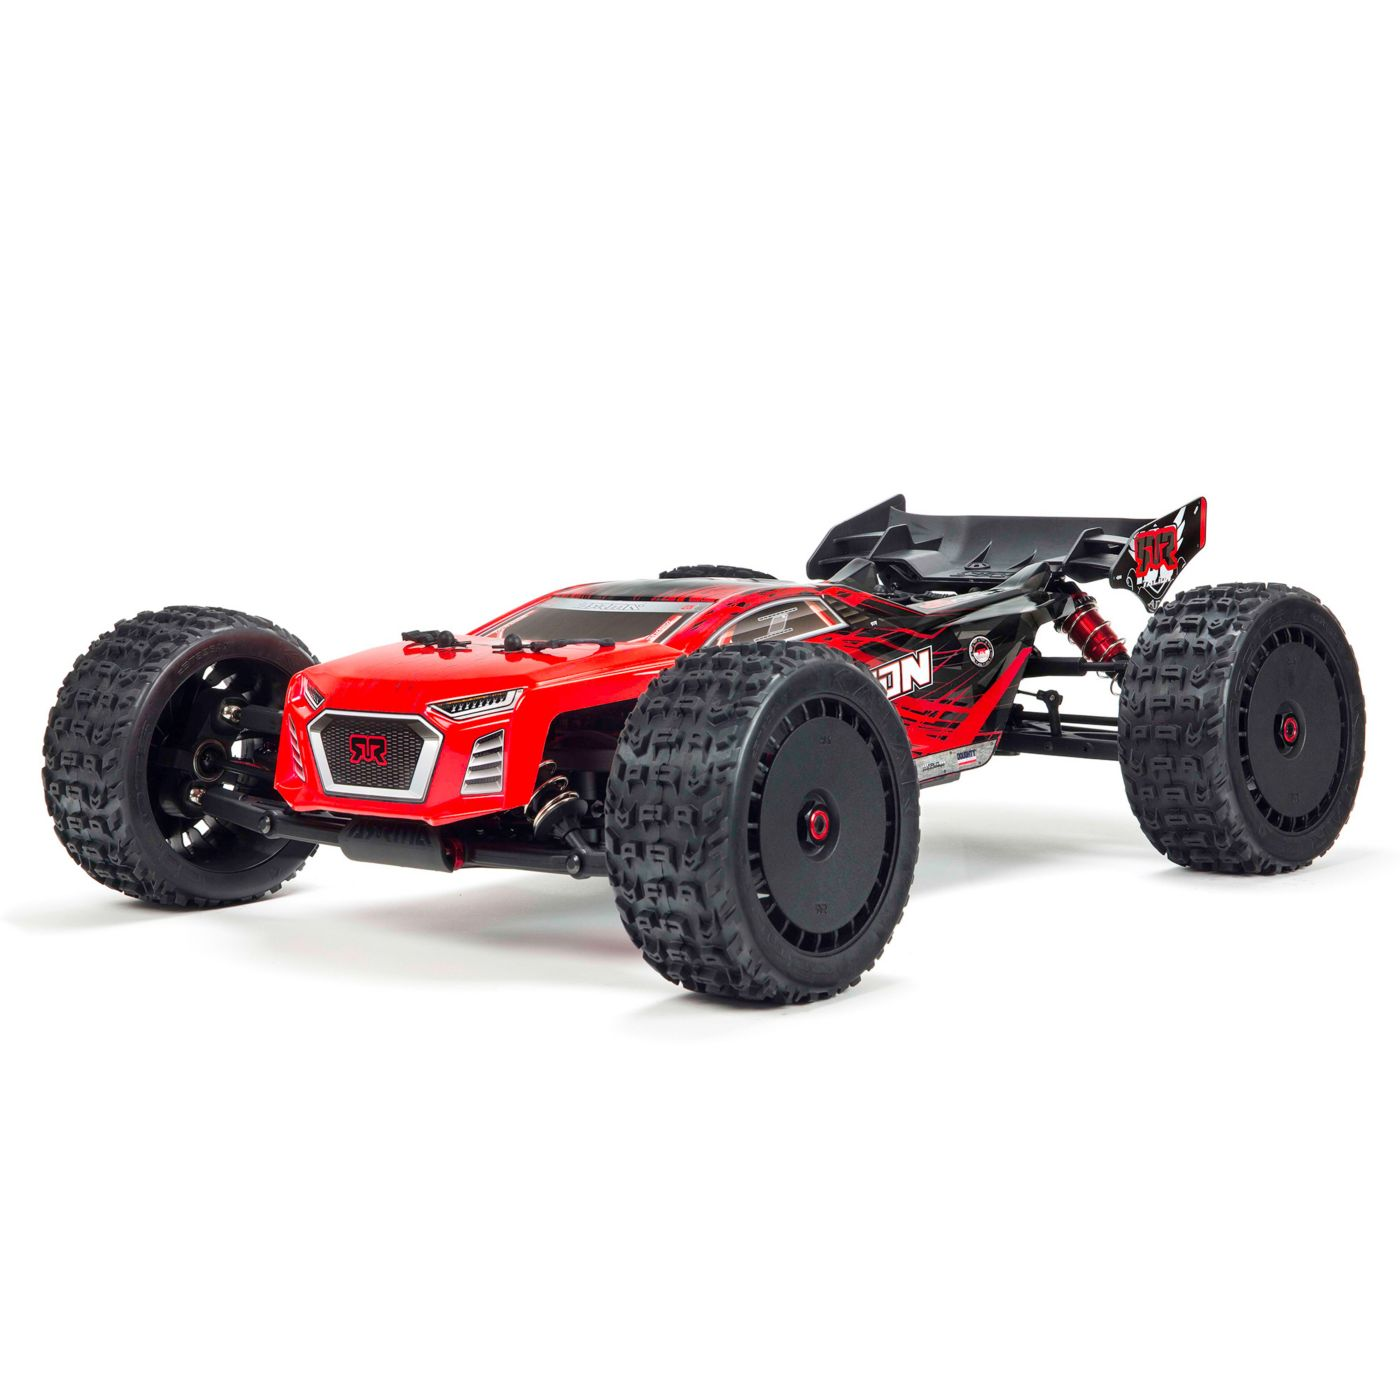 Terrorize Terrain with ARRMA's Updated Talion 6S BLX Speed Truggy